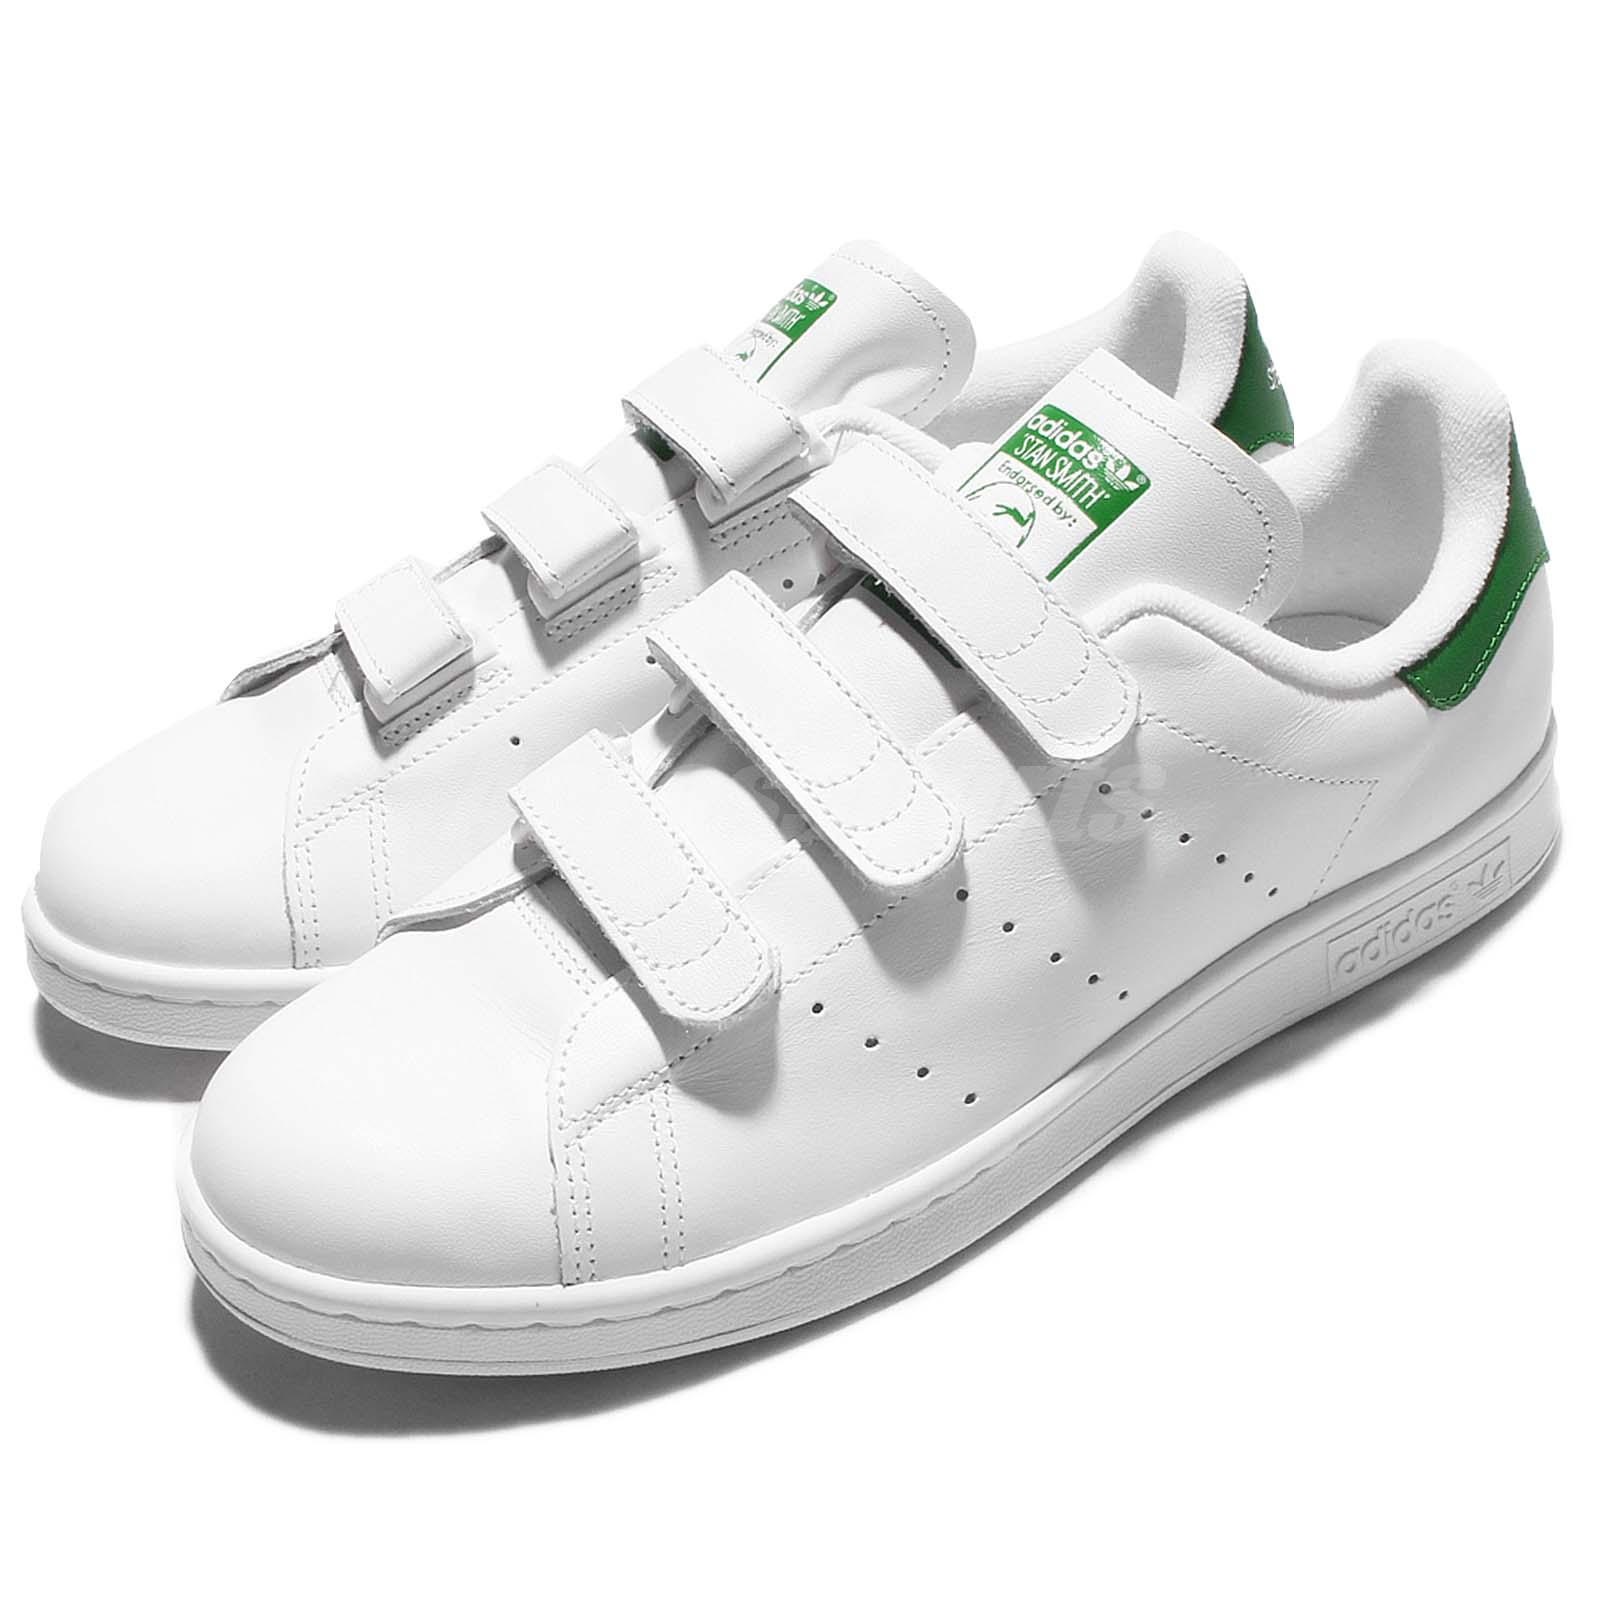 the best attitude 30989 3cd58 Details about adidas Originals Stan Smith CF White Green Mens Srap Shoes  Sneakers S75187